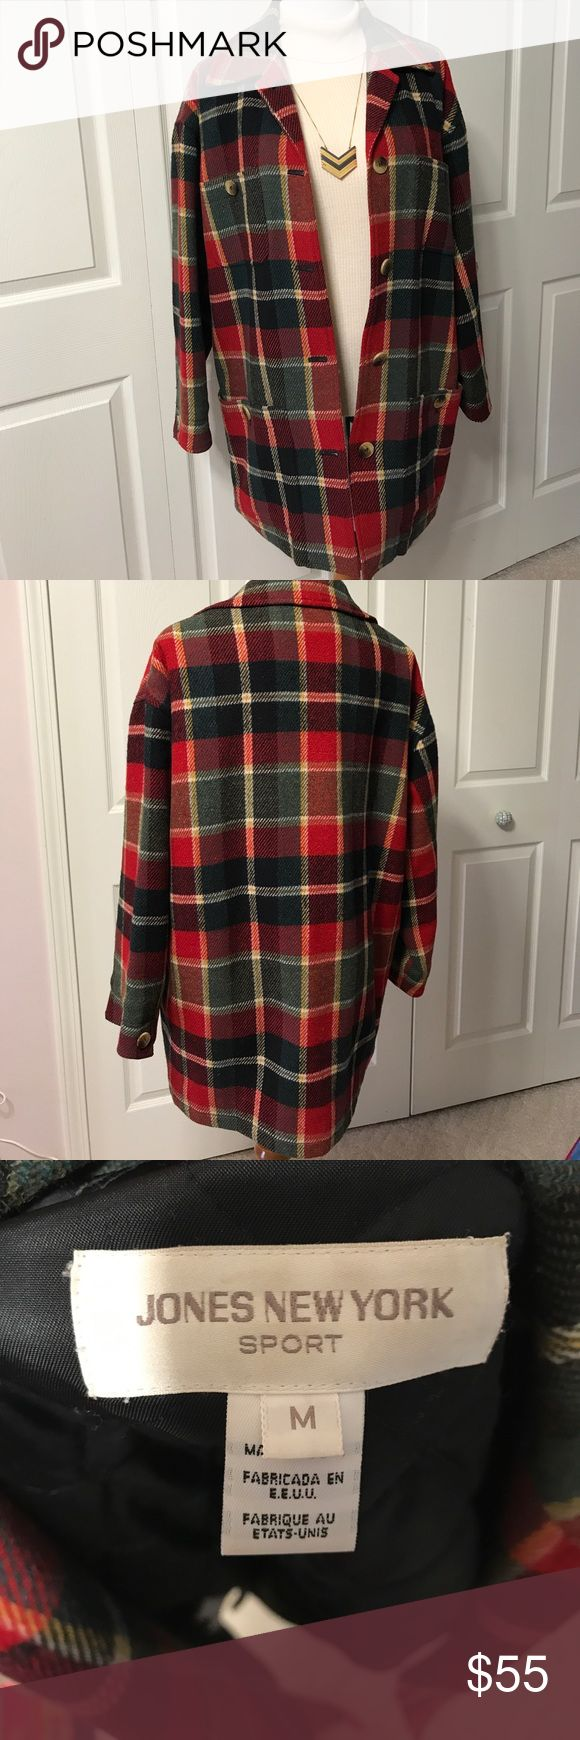 WOW!! Jones New York Wool Jacket Made in USA🇺🇸 This is the bomb! I love finding treasures like this. Made in the US always makes something more special in my book, and this is. Gorgeous colors, fully lined in quilted satin, big front pockets, and Perfect condition!  I do feel that though this was designed to be oversized, it is too big for a standard medium that it is tagged as. It measures 24 inches across the bust and 30 long. I would call this an extra large for sure. So I am tagging it…